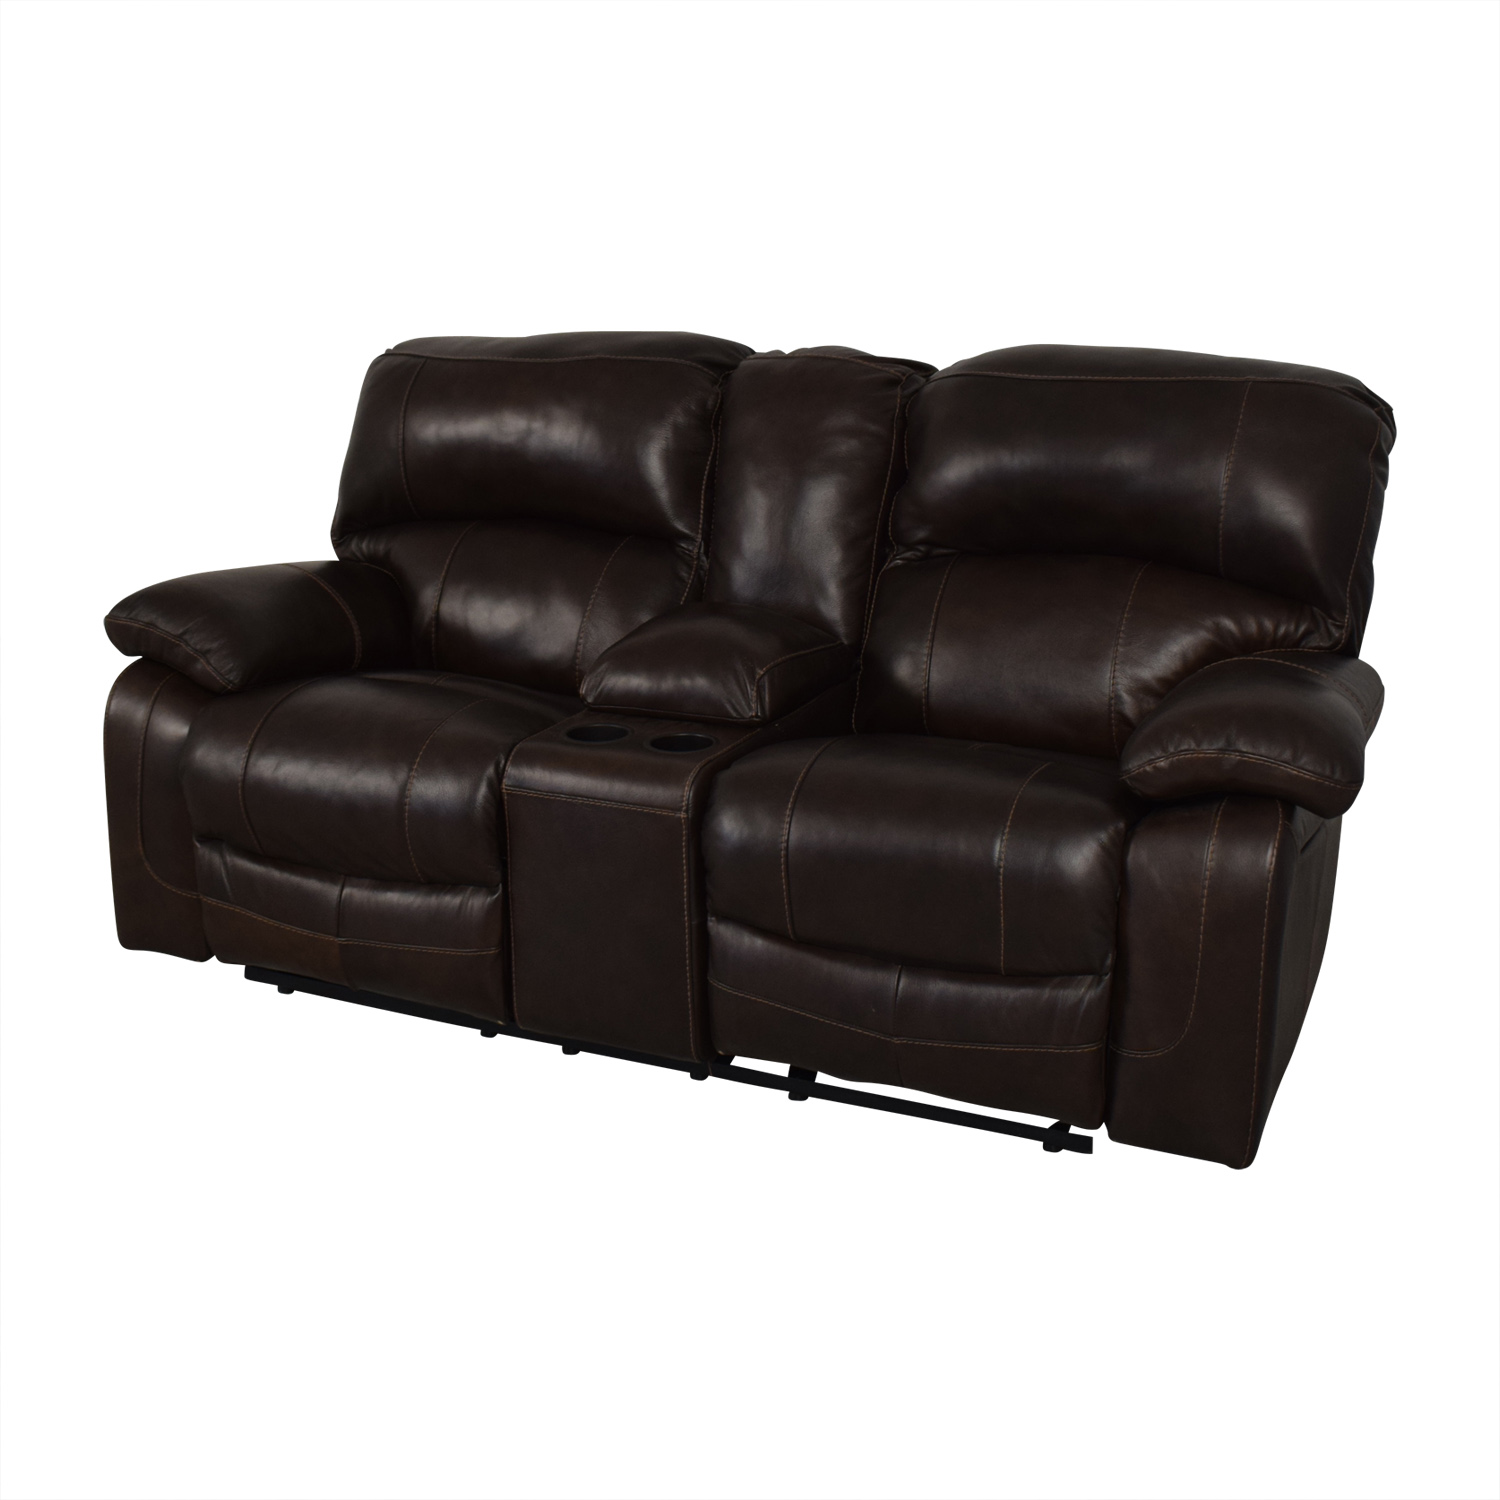 Ashley Furniture Ashley Furniture Reclining Sofa Recliners